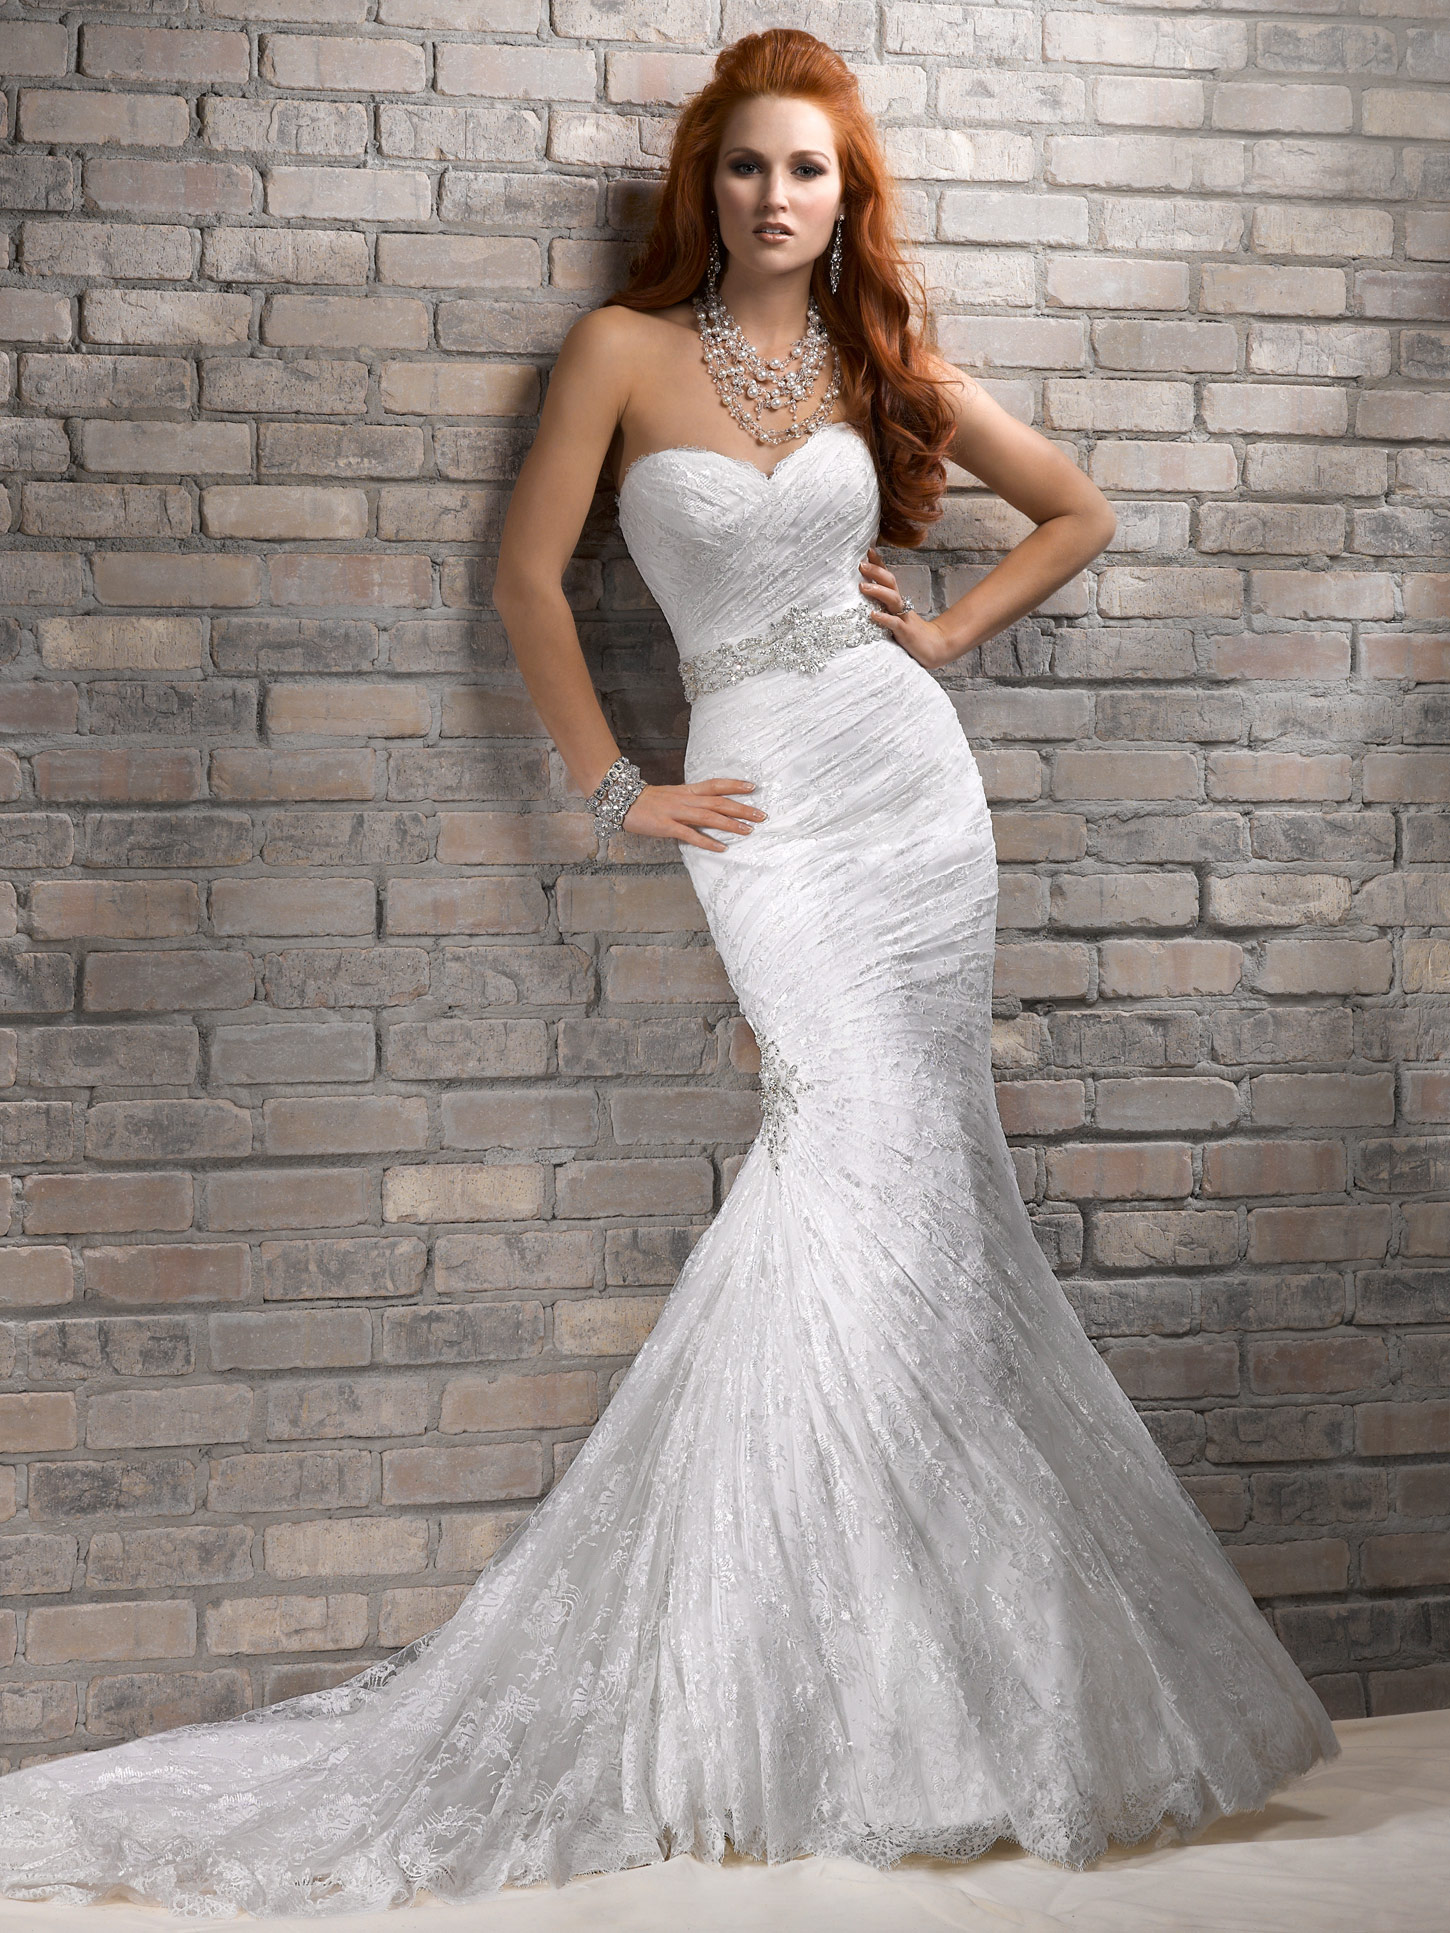 Strapless Mermaid Wedding Dresses For Sexy And Elegant